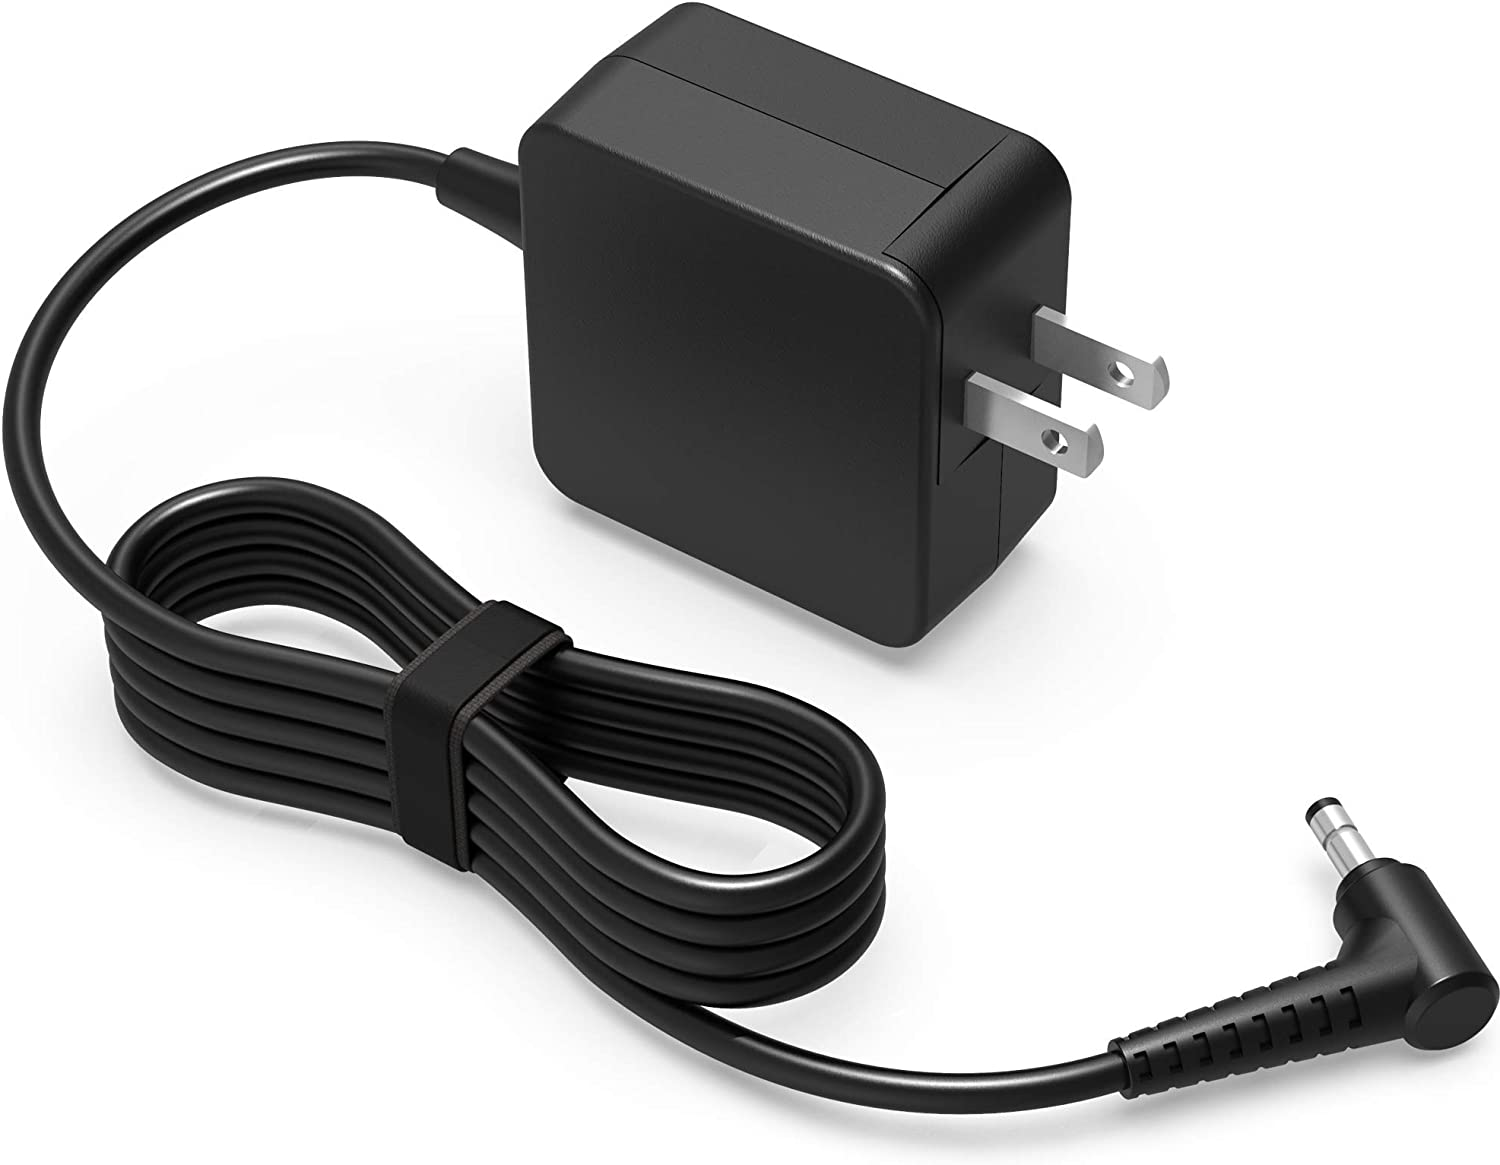 65W AC Charger for Lenovo Ideapad S145 S340 S530 S540 S740 S145-15AST S530-13IML S540-15IML S540-14IML S340-13IML S340-14IML S340-15IML S740-14IIL Touch Laptop Power Supply Adapter Cord